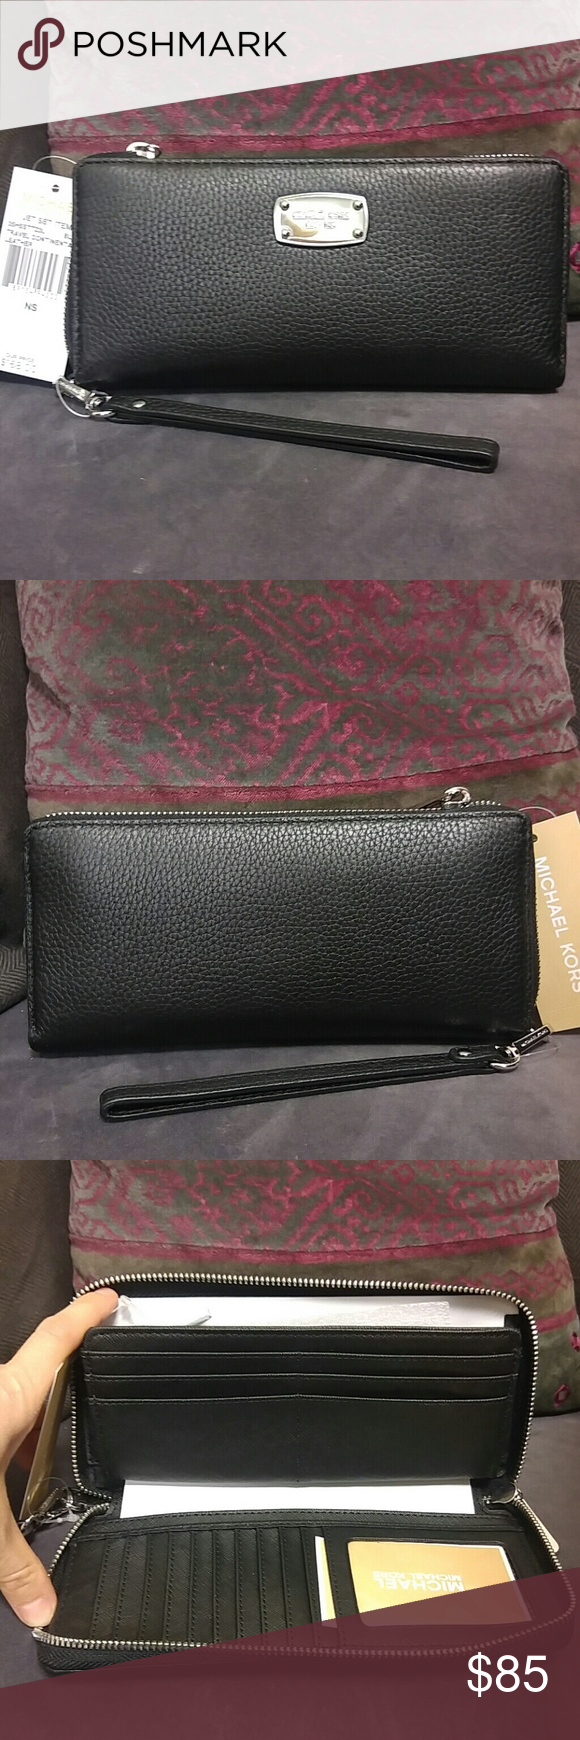 Michael Kors Wallet NWT MK black travel continental wallet with silver hardware. Inside has 16 card slots, space for a visible ID, pockets, space for cash, and a zip compartment for change. No holds or trades. Michael Kors Bags Wallets